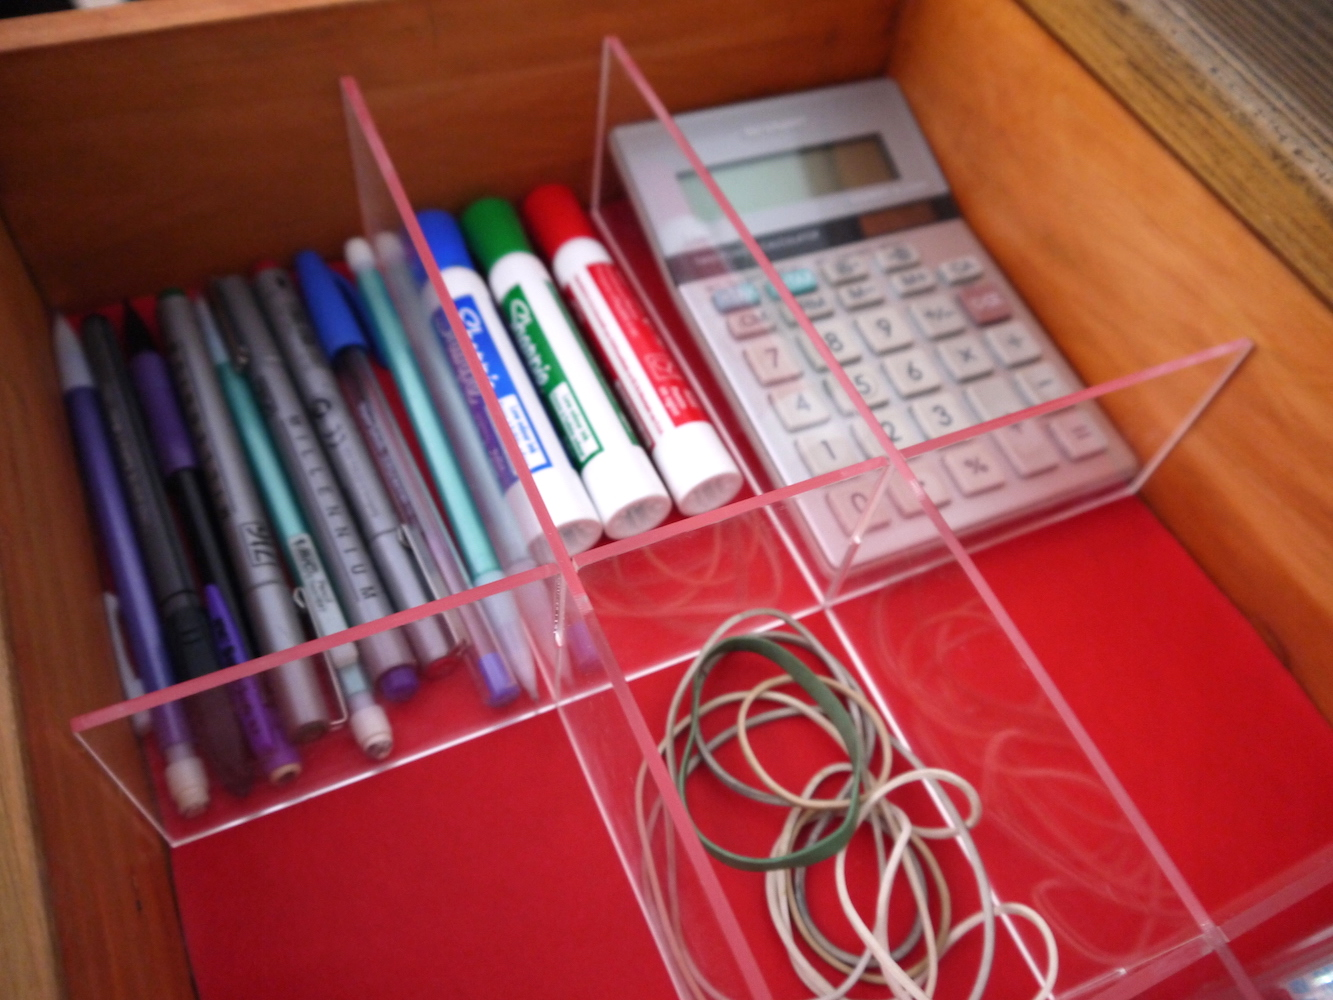 acrylic grid organizer on red mat in desk drawer